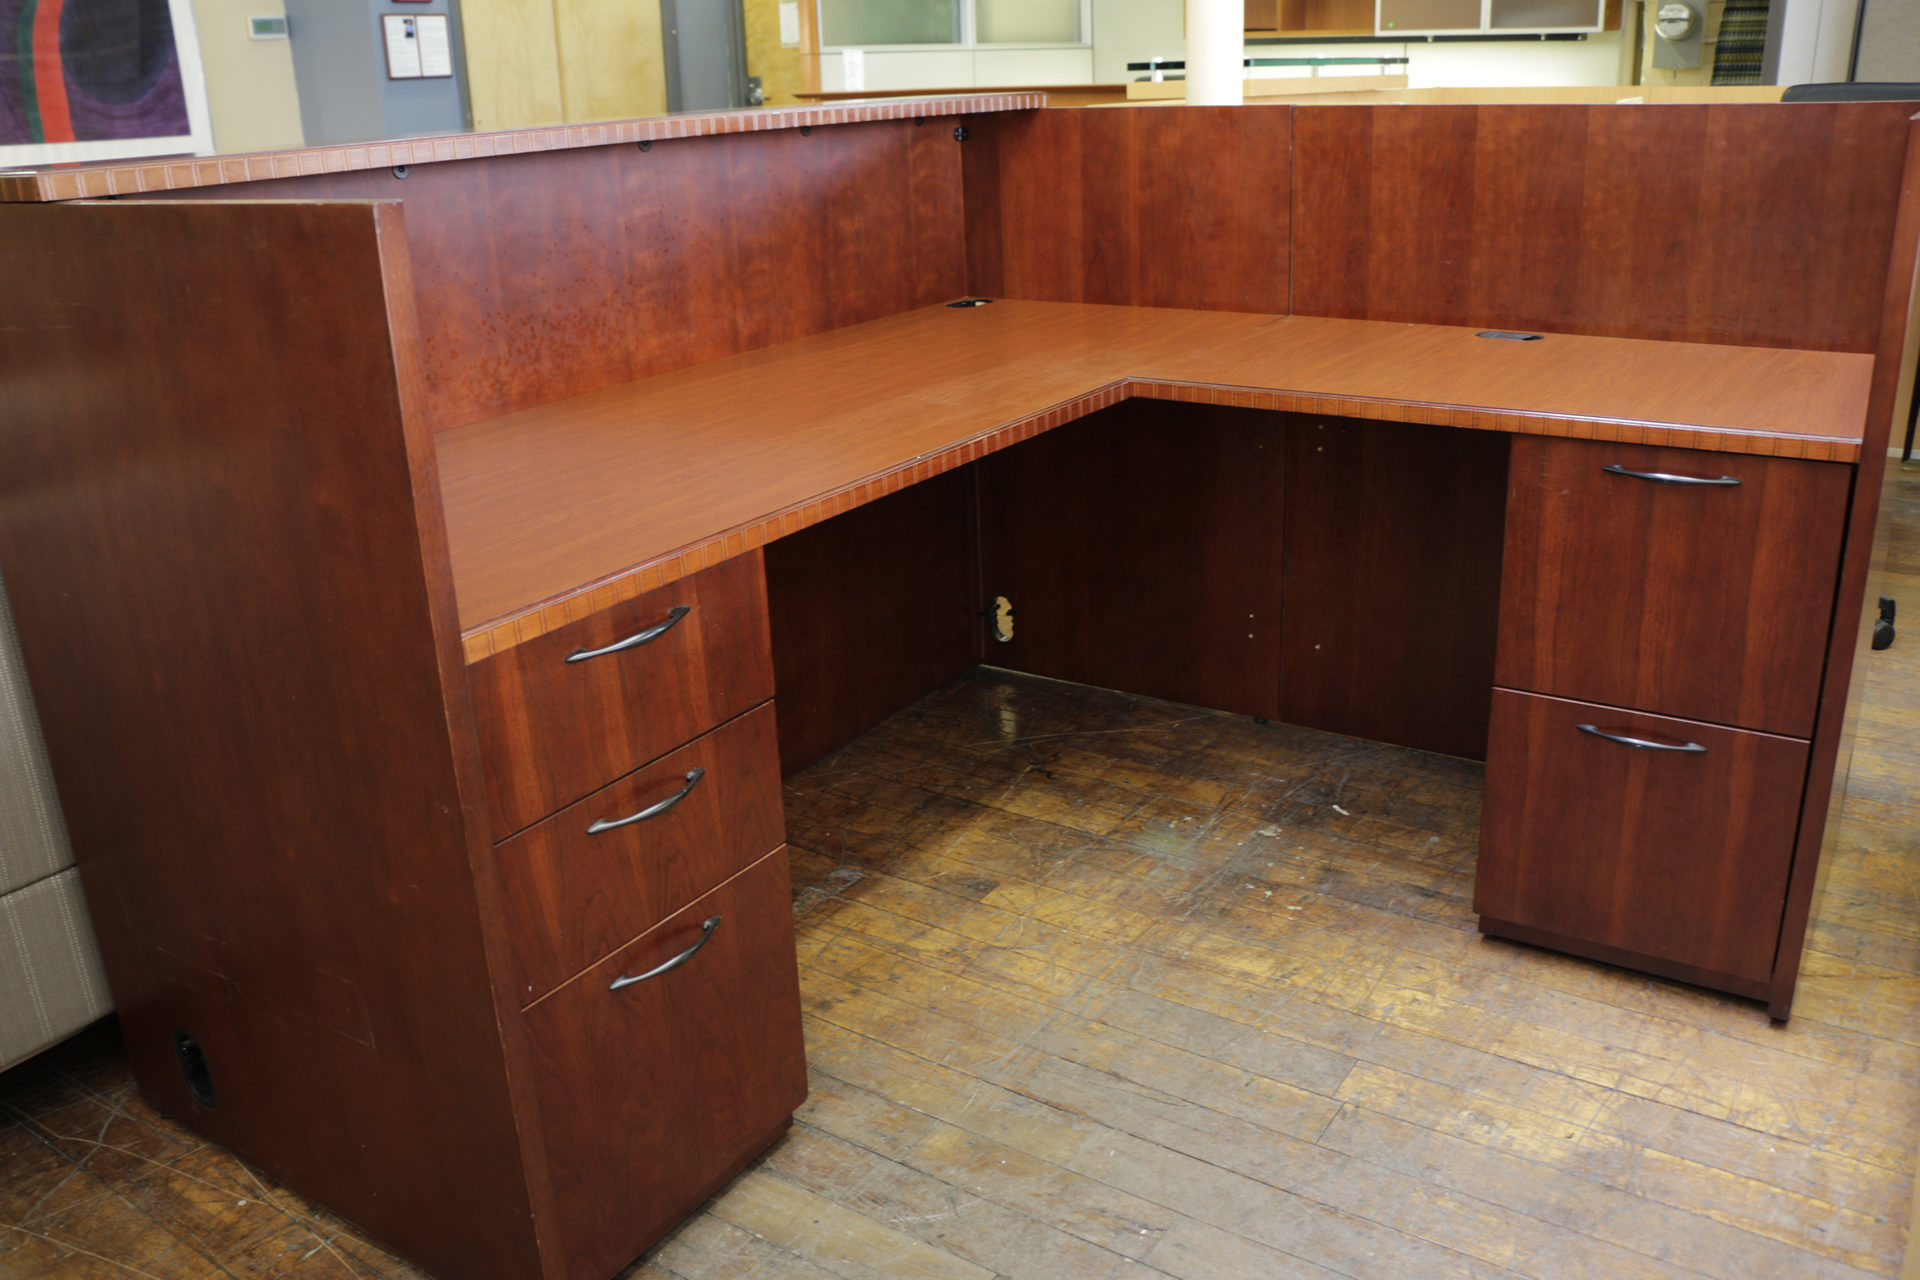 peartreeofficefurniture_peartreeofficefurniture_mg_3805.jpg